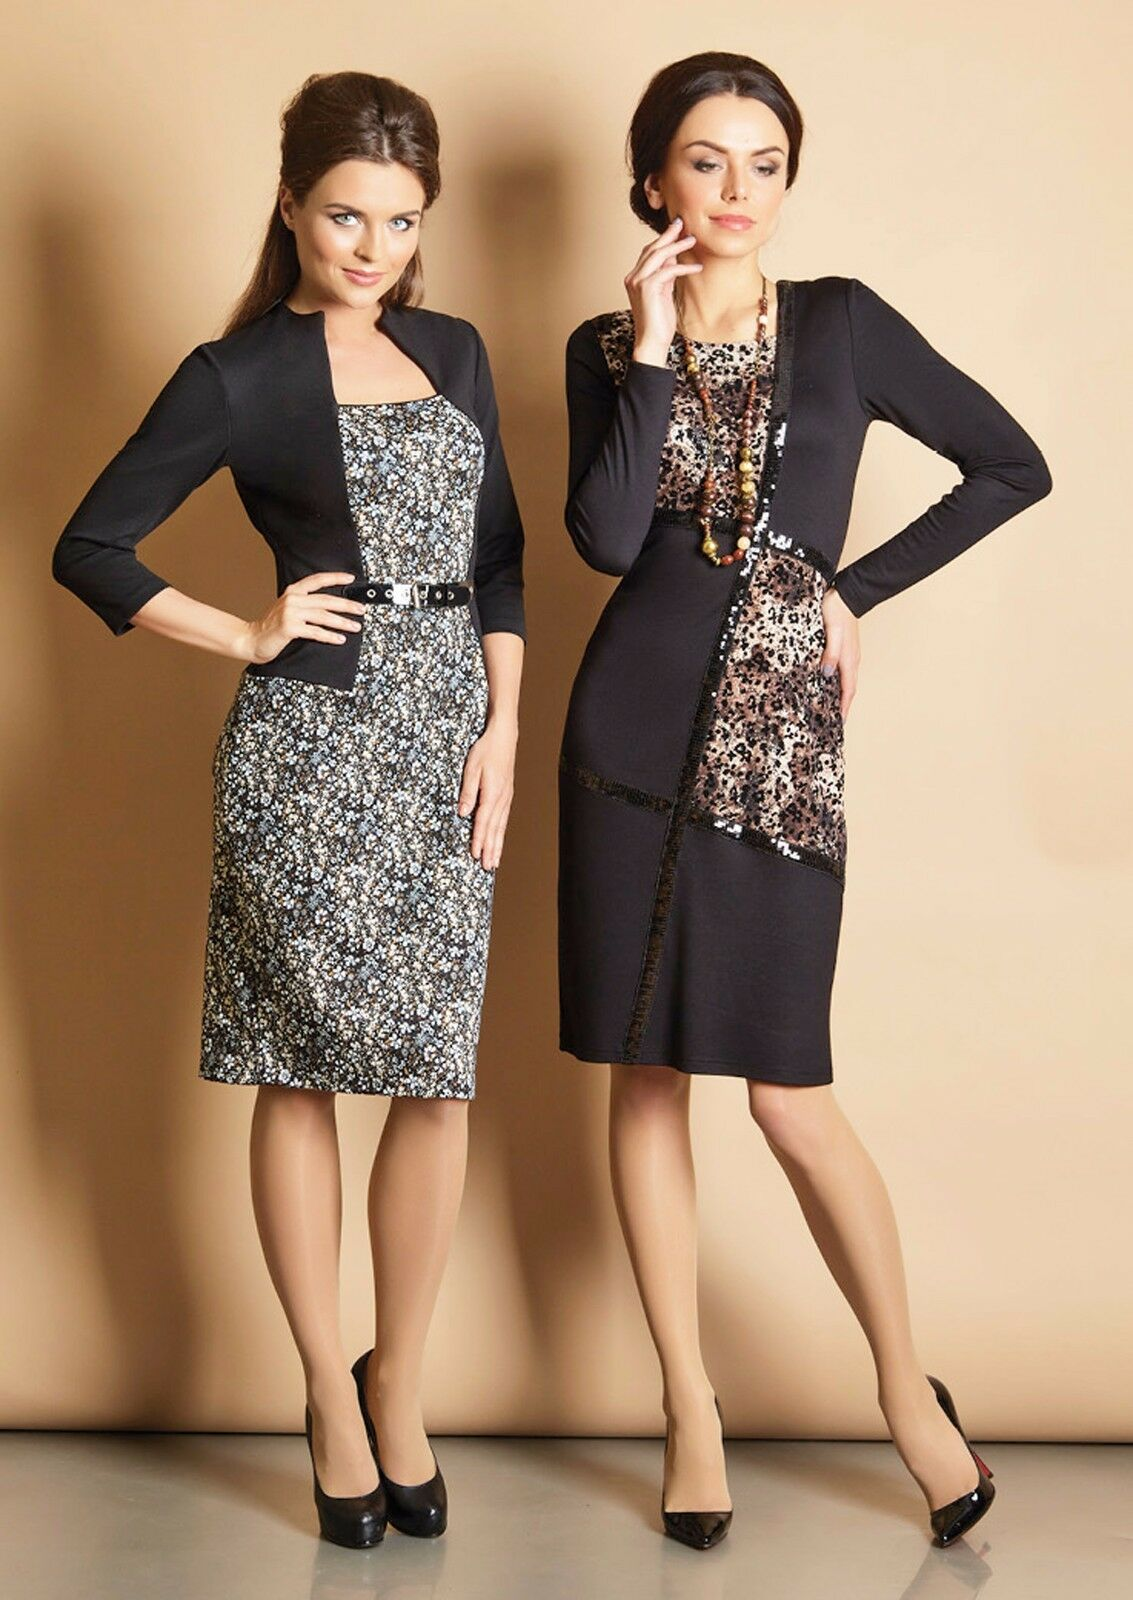 DRESS WEAR TO TO TO WORK STRETCH CASUAL LONG SLEEVE KNEE-LENGTH MADE IN EUROPE S L XL cf927a